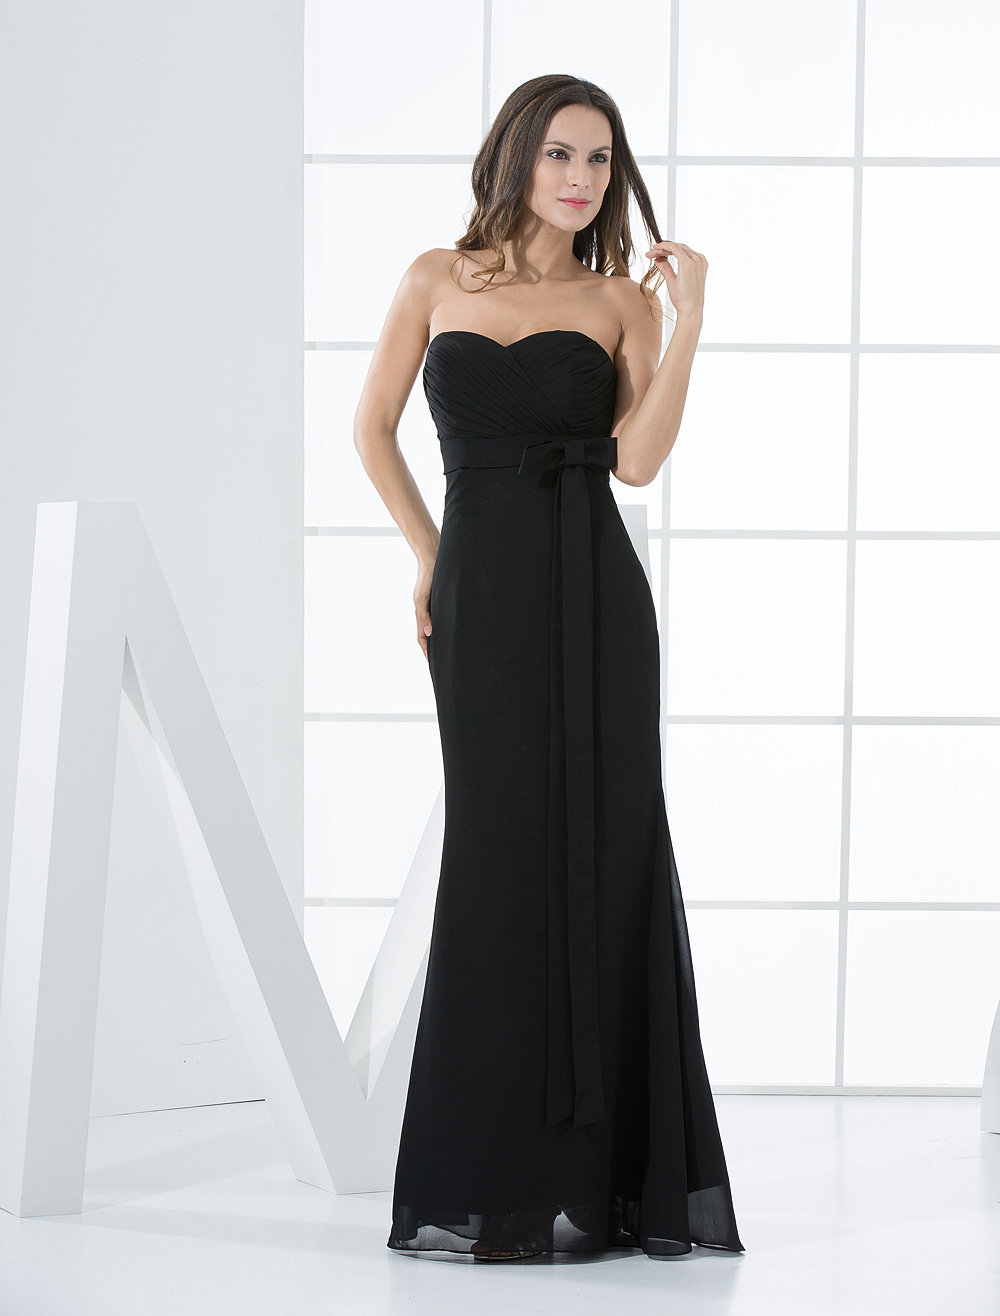 Black Bridesmaid Dress Strapless Sash Mermaid Bows Chiffon Dress